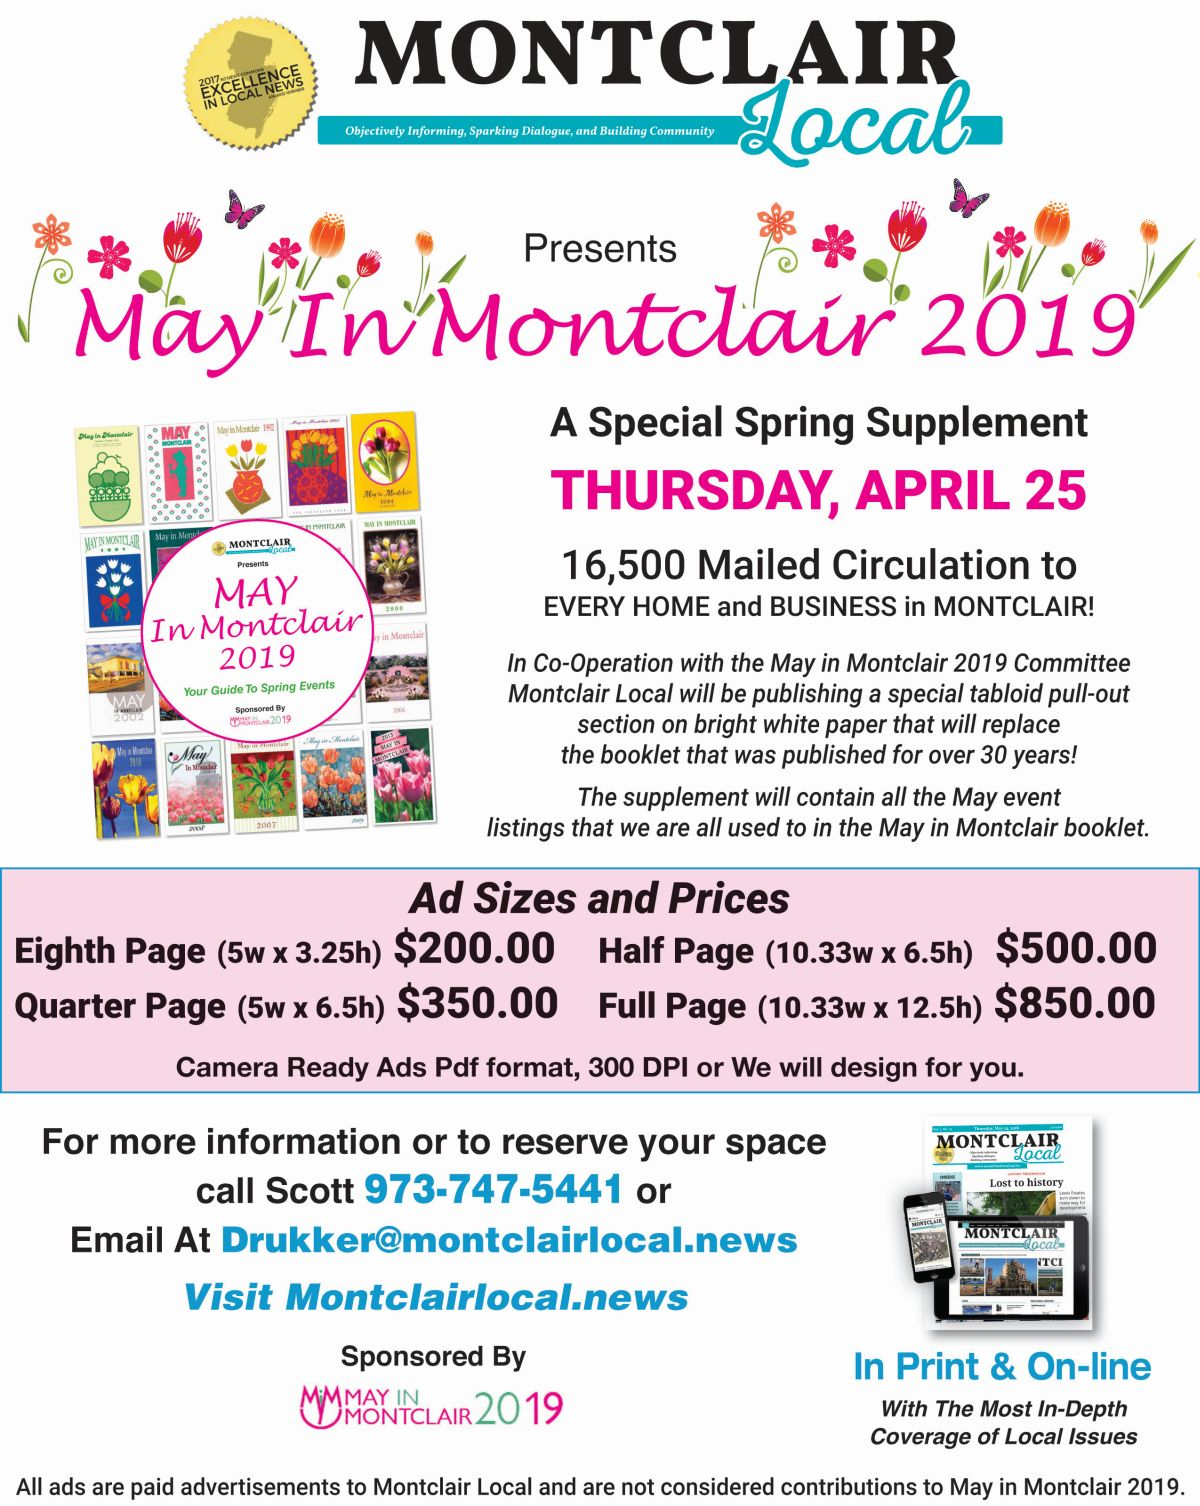 Montclair Local is printing the 2019 May in Montclair Calendar of Events. Advertise in the special supplement to reach all 16,500 households and businesses in Montclair.